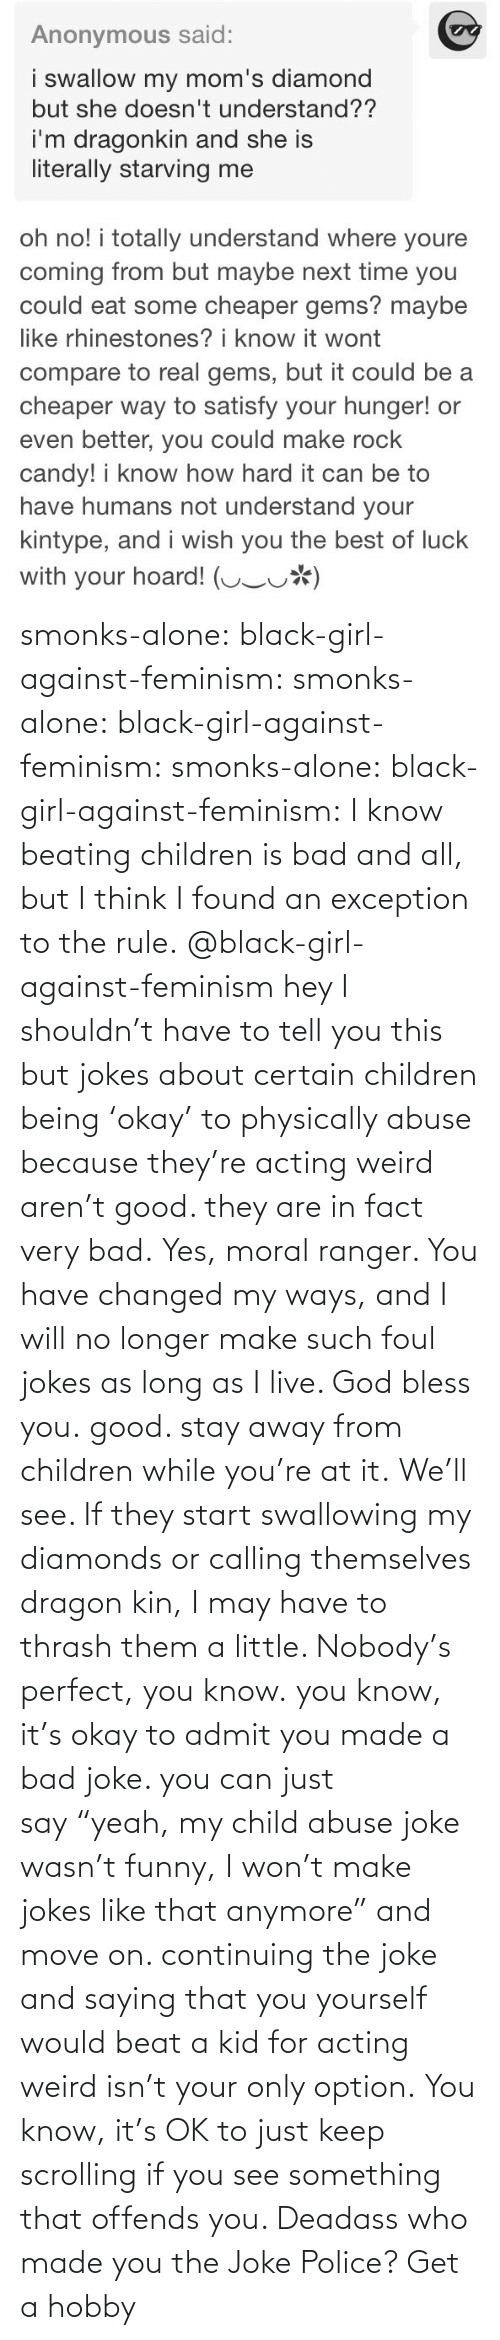 "certain: smonks-alone:  black-girl-against-feminism: smonks-alone:  black-girl-against-feminism:  smonks-alone:  black-girl-against-feminism: I know beating children is bad and all, but I think I found an exception to the rule. @black-girl-against-feminism hey I shouldn't have to tell you this but jokes about certain children being 'okay' to physically abuse because they're acting weird aren't good. they are in fact very bad.  Yes, moral ranger. You have changed my ways, and I will no longer make such foul jokes as long as I live. God bless you.  good. stay away from children while you're at it.  We'll see. If they start swallowing my diamonds or calling themselves dragon kin, I may have to thrash them a little. Nobody's perfect, you know.  you know, it's okay to admit you made a bad joke. you can just say ""yeah, my child abuse joke wasn't funny, I won't make jokes like that anymore"" and move on. continuing the joke and saying that you yourself would beat a kid for acting weird isn't your only option.   You know, it's OK to just keep scrolling if you see something that offends you. Deadass who made you the Joke Police? Get a hobby"